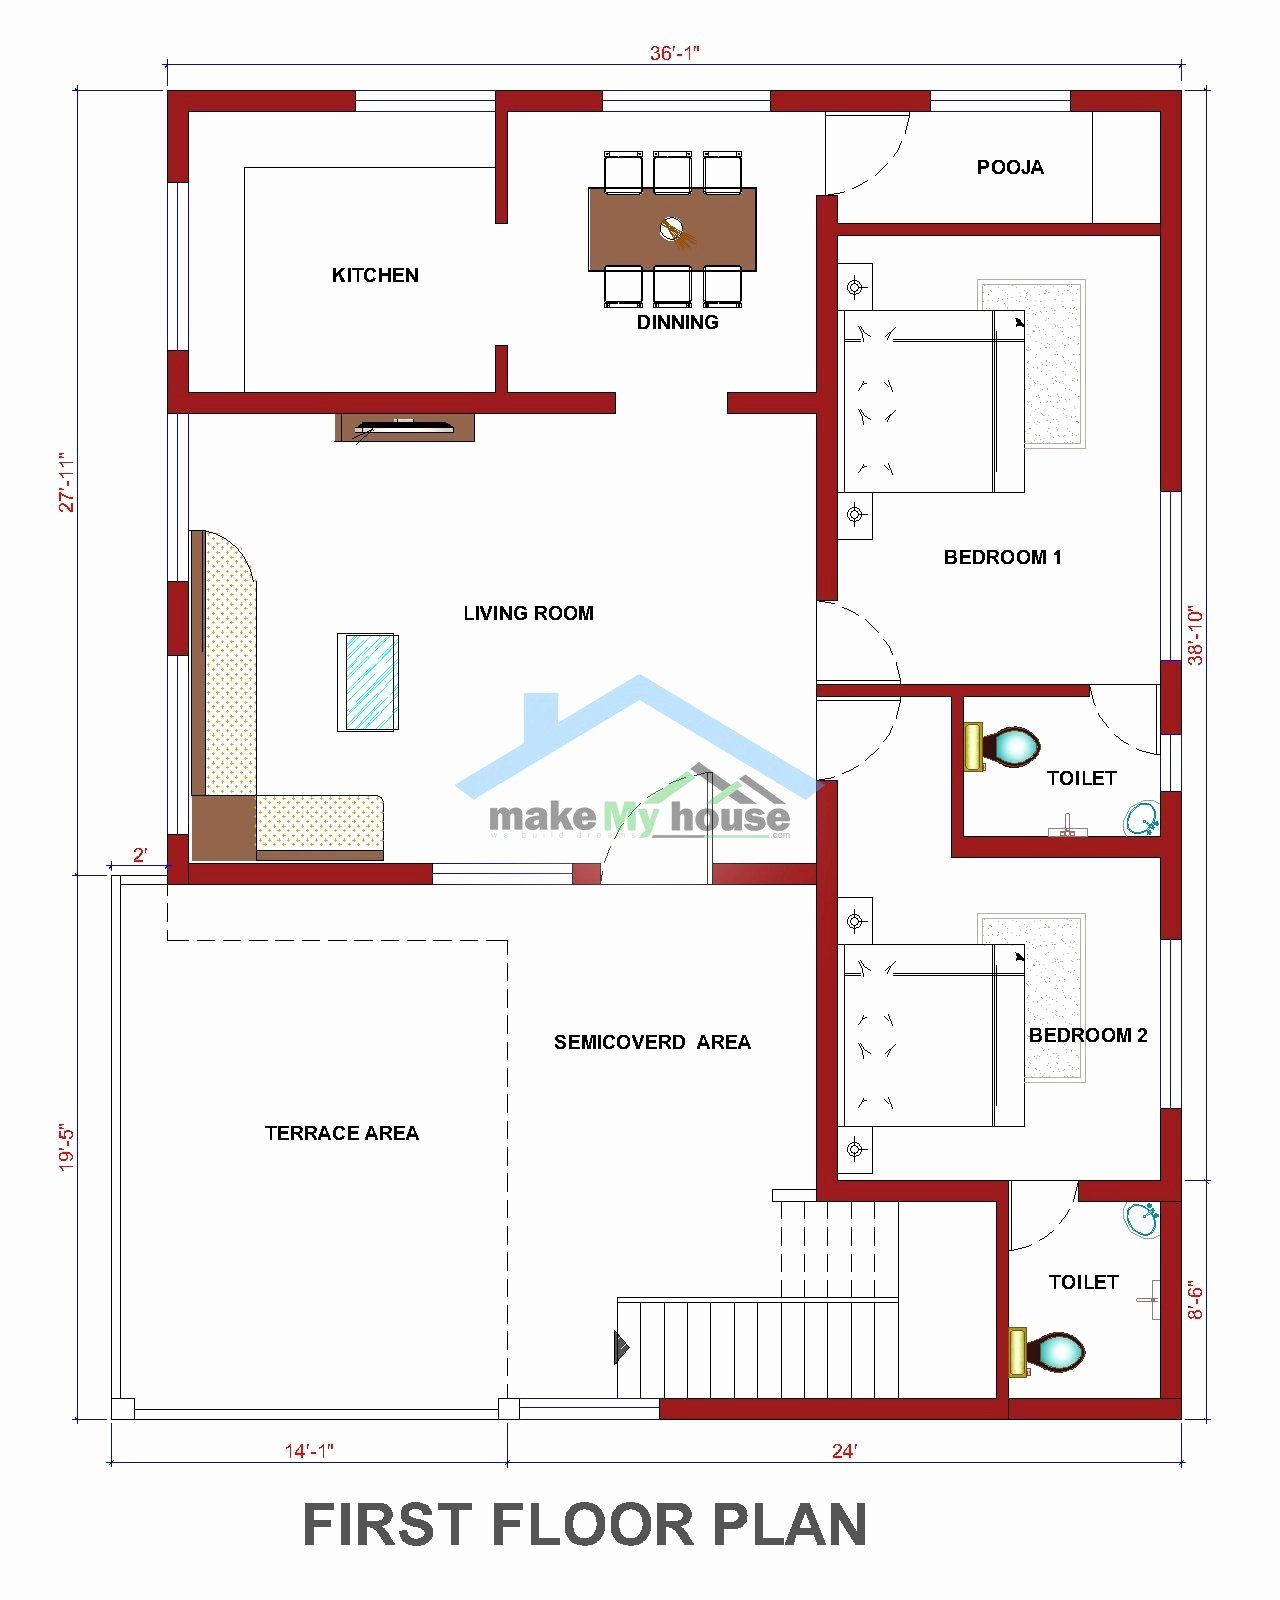 40 X 50 House Plans Best Of Floor Plan For 40 X 50 Feet Plot Kayleighdickinson Best My House Plans House Plans Ranch House Plans